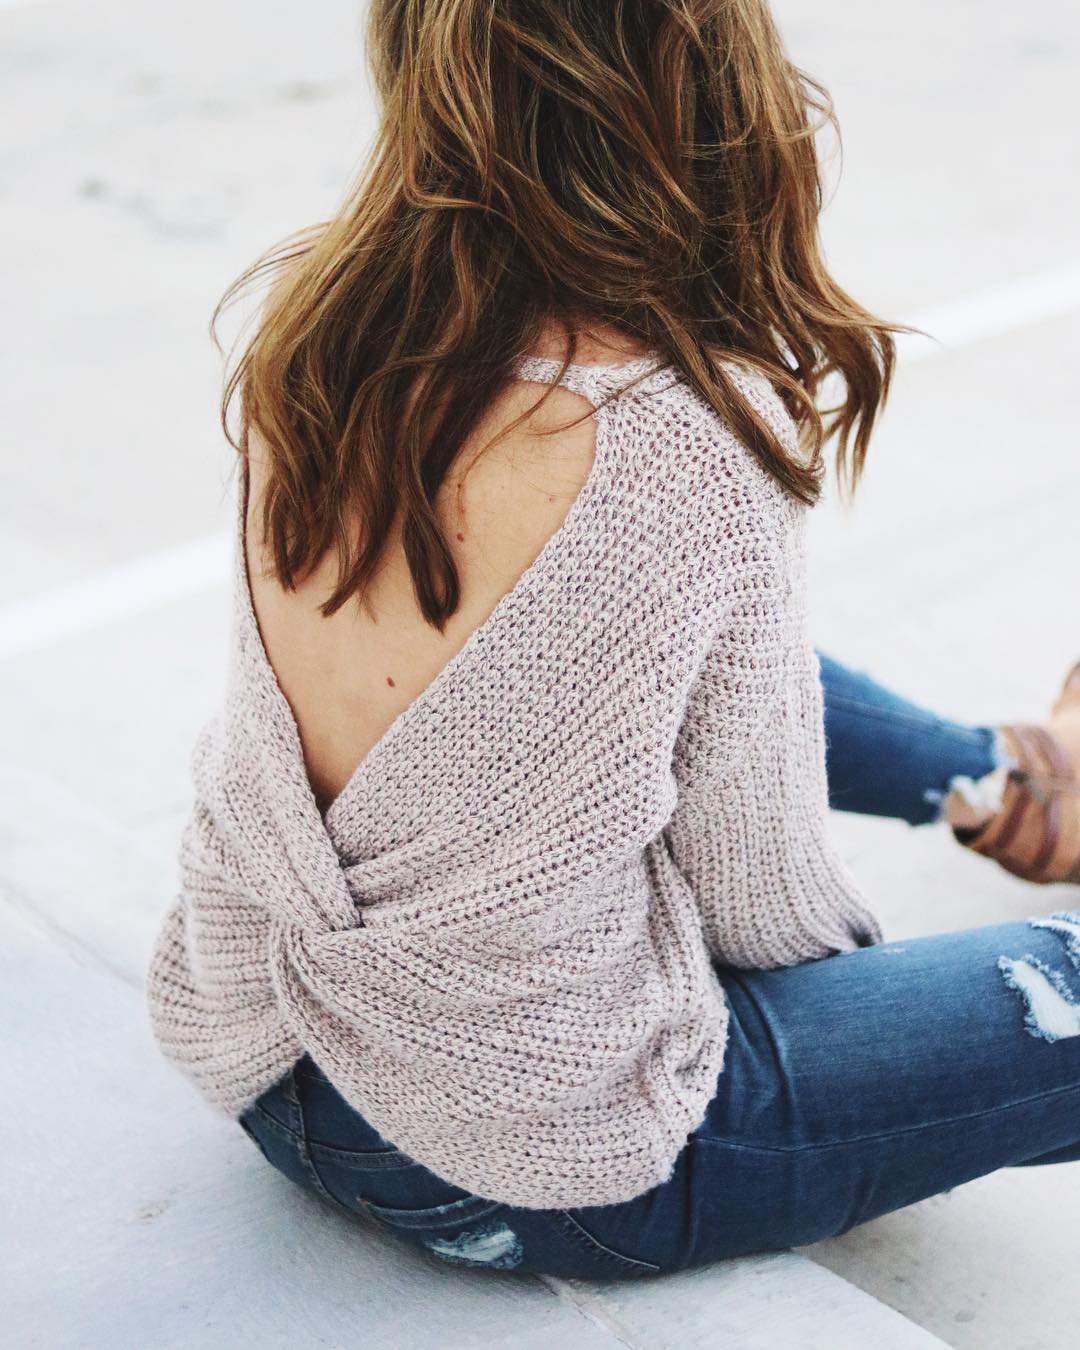 Rocking Backless Sweater With Blue Jeans